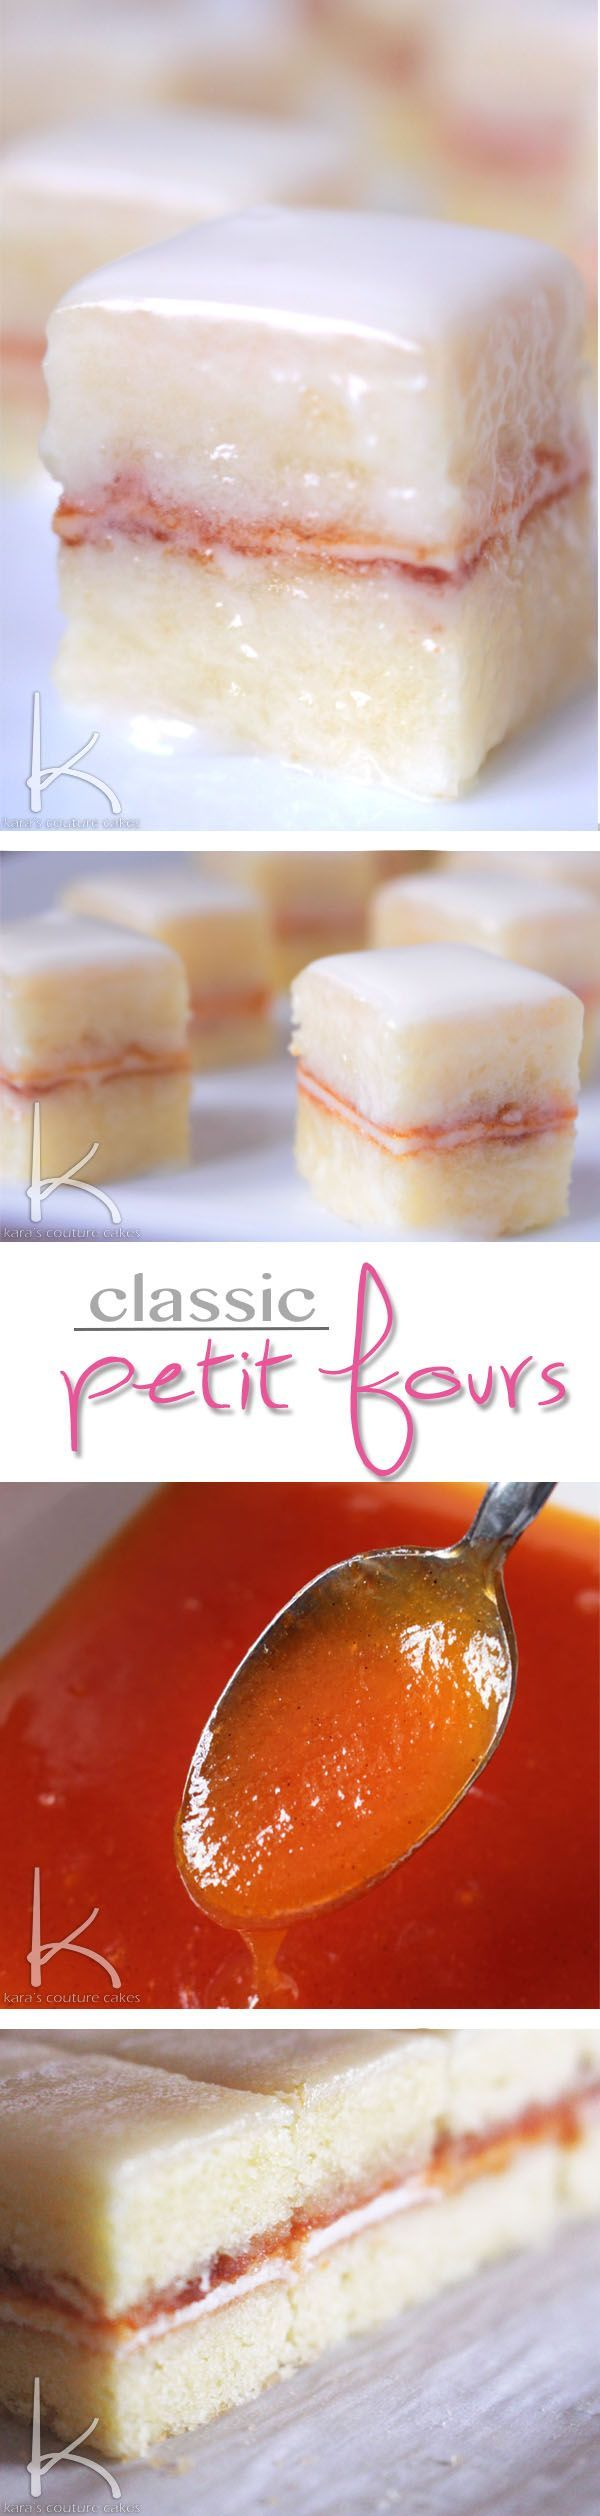 These scrumptious little bite sized desserts are far easier than they look, and I'll take you step-by-step through making them! Classic Petit Fours - Almond Frangipane cake, Sweetened Ricotta and fresh Apricot reduction. Impress everyone at your next gath